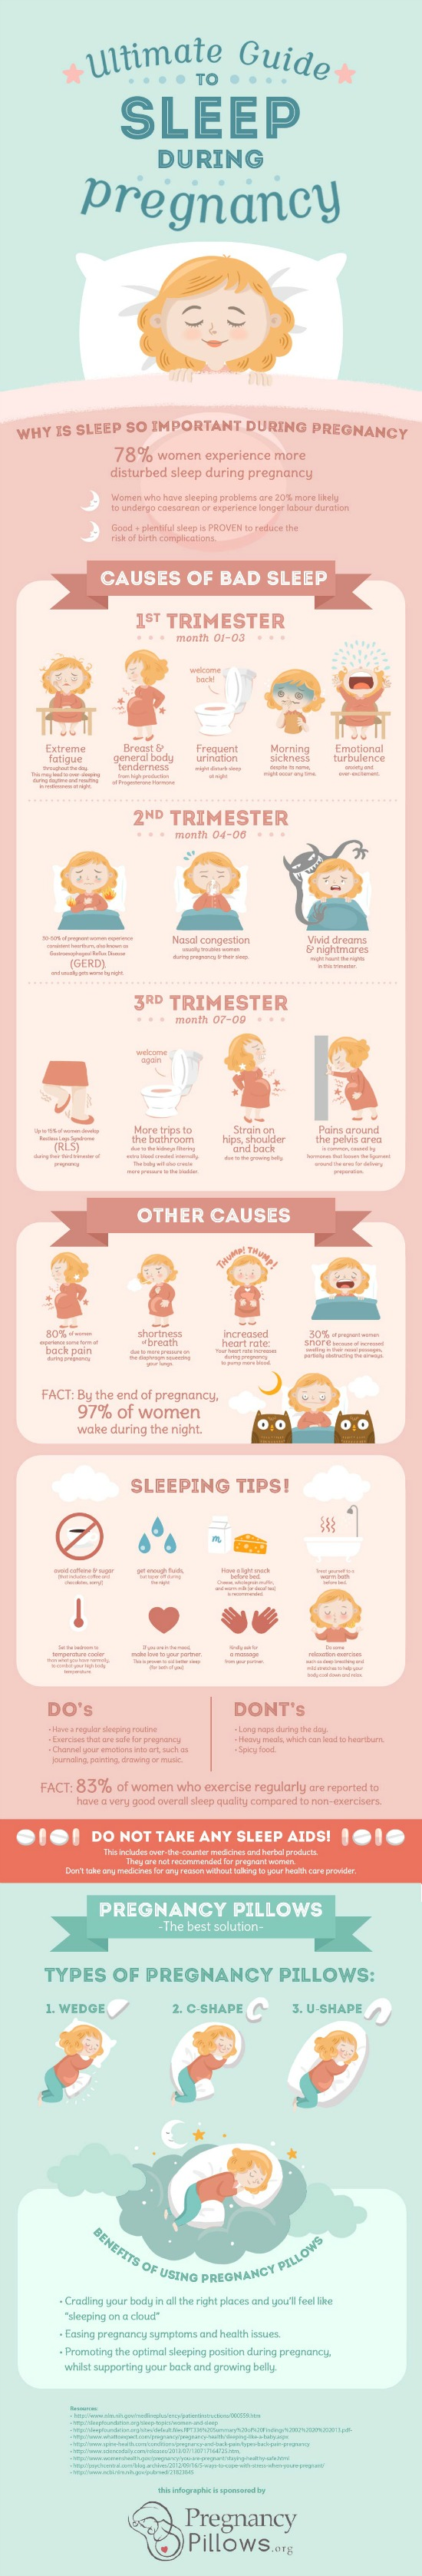 Ultimate Guide to Sleep During Pregnancy #sleep #pregnancy #selfcare